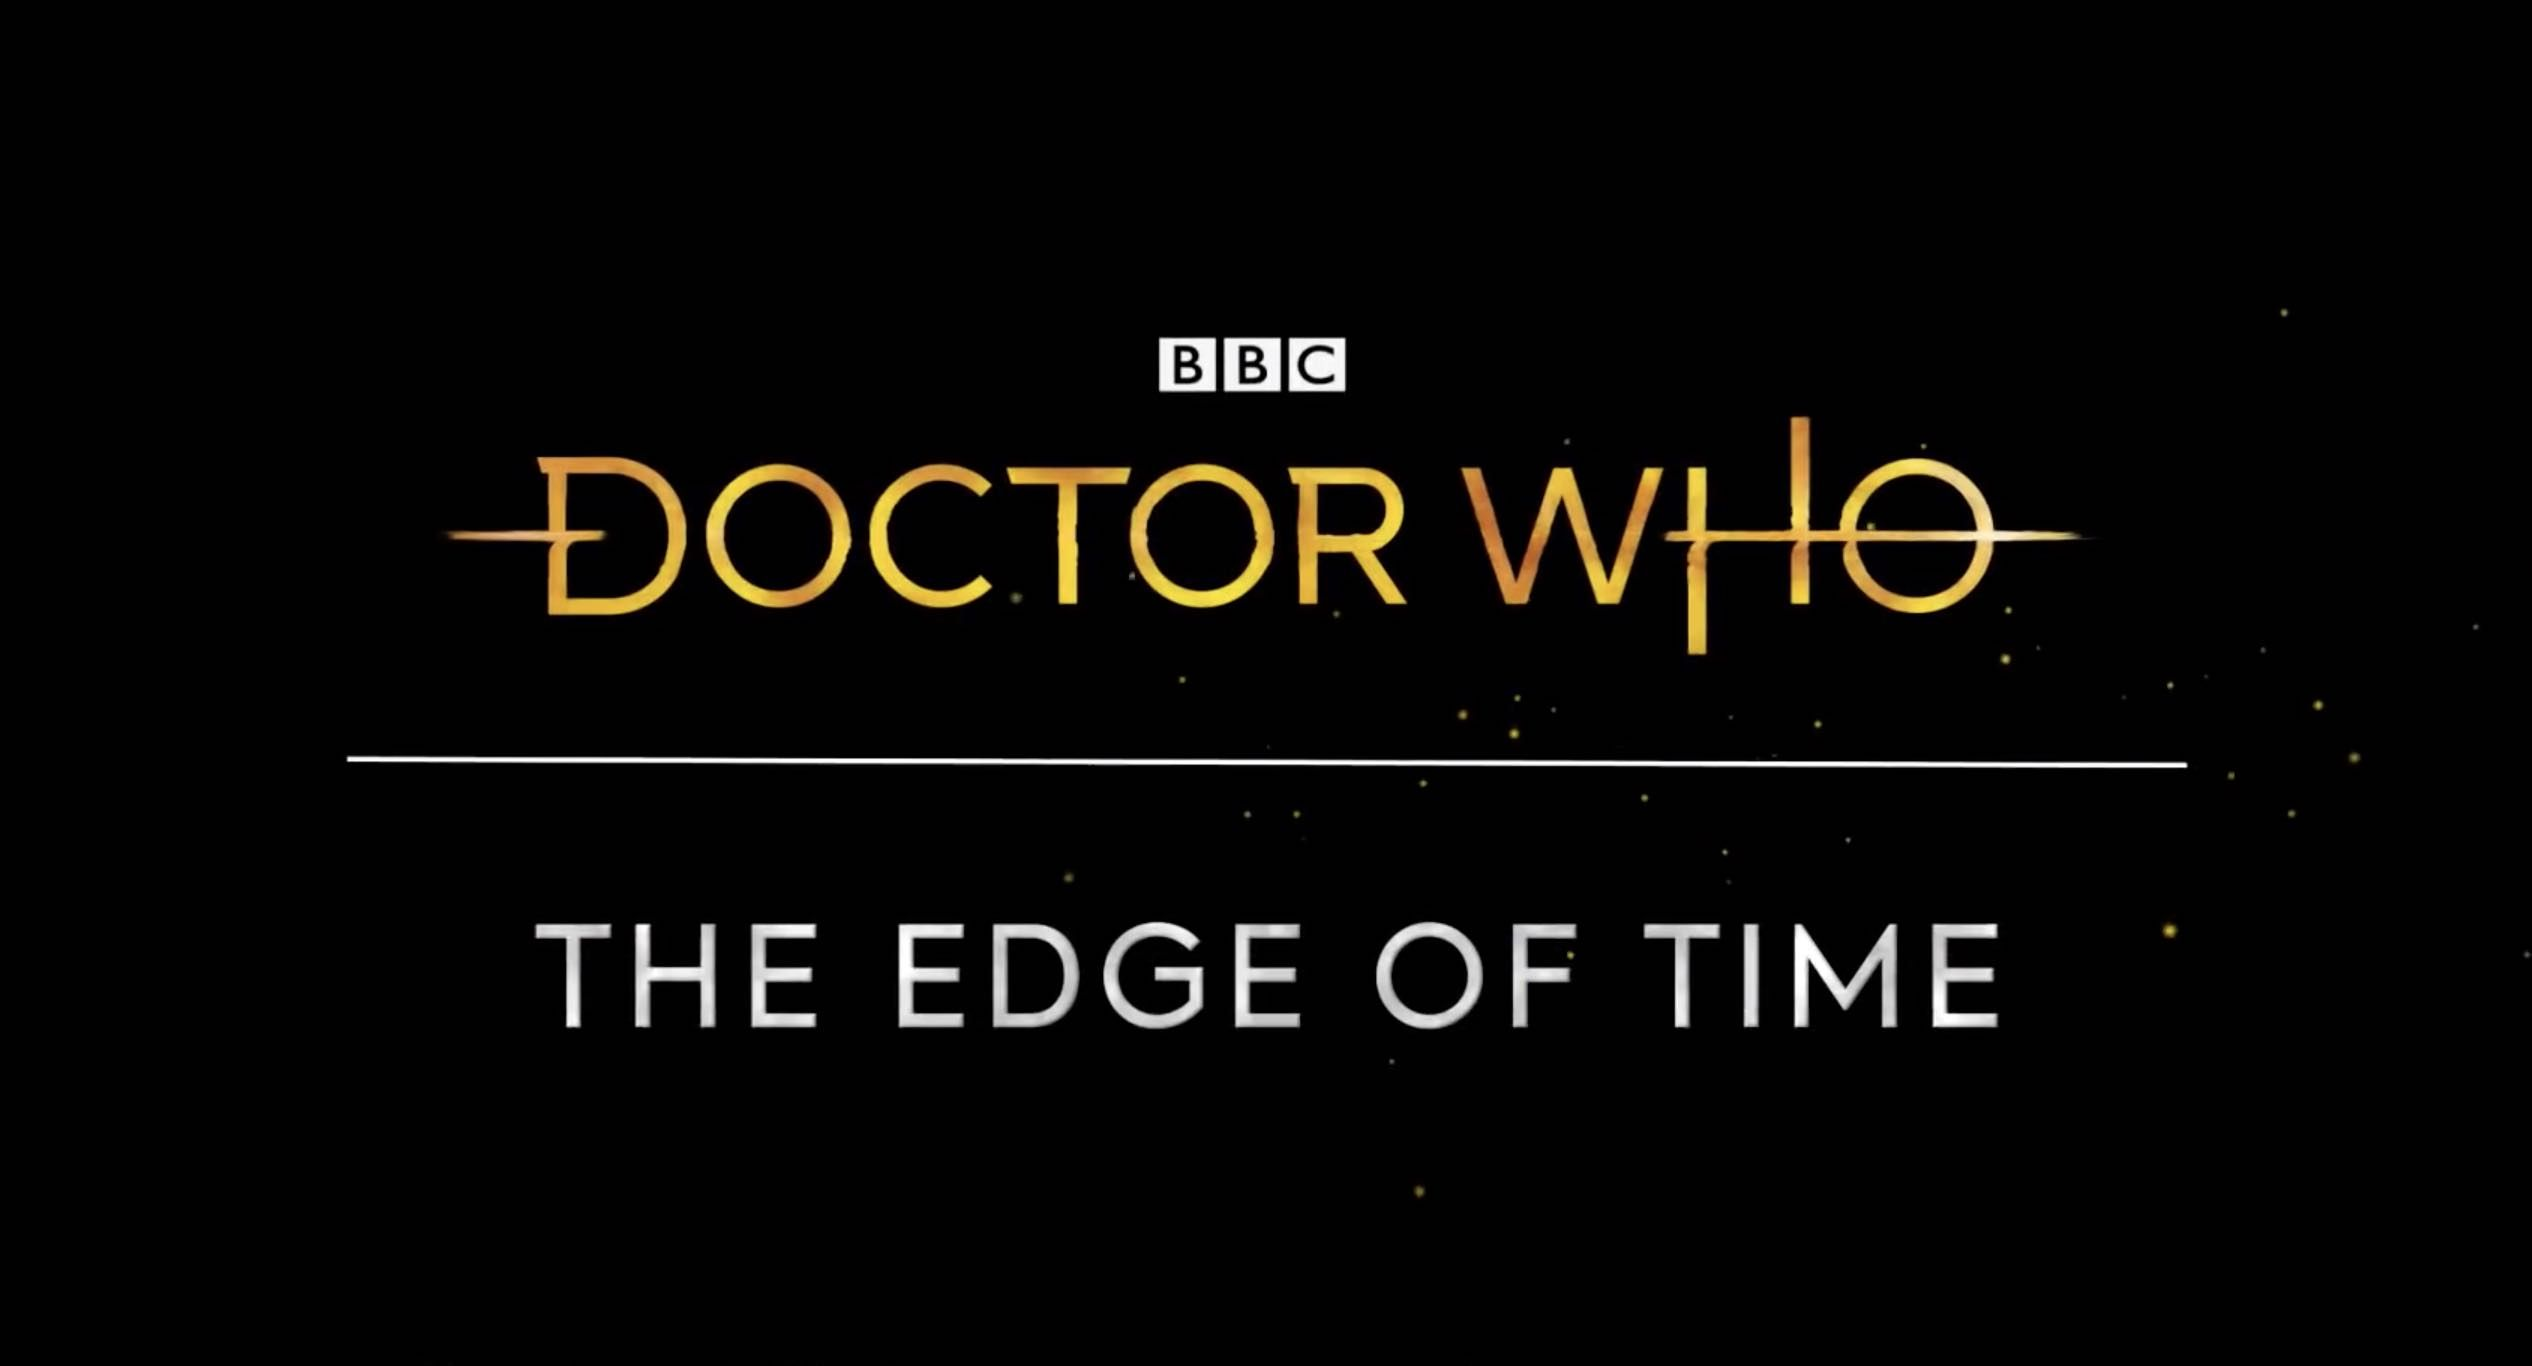 Doctor Who: The Edge of Time Trailer is out now, fans get a look inside TARDIS